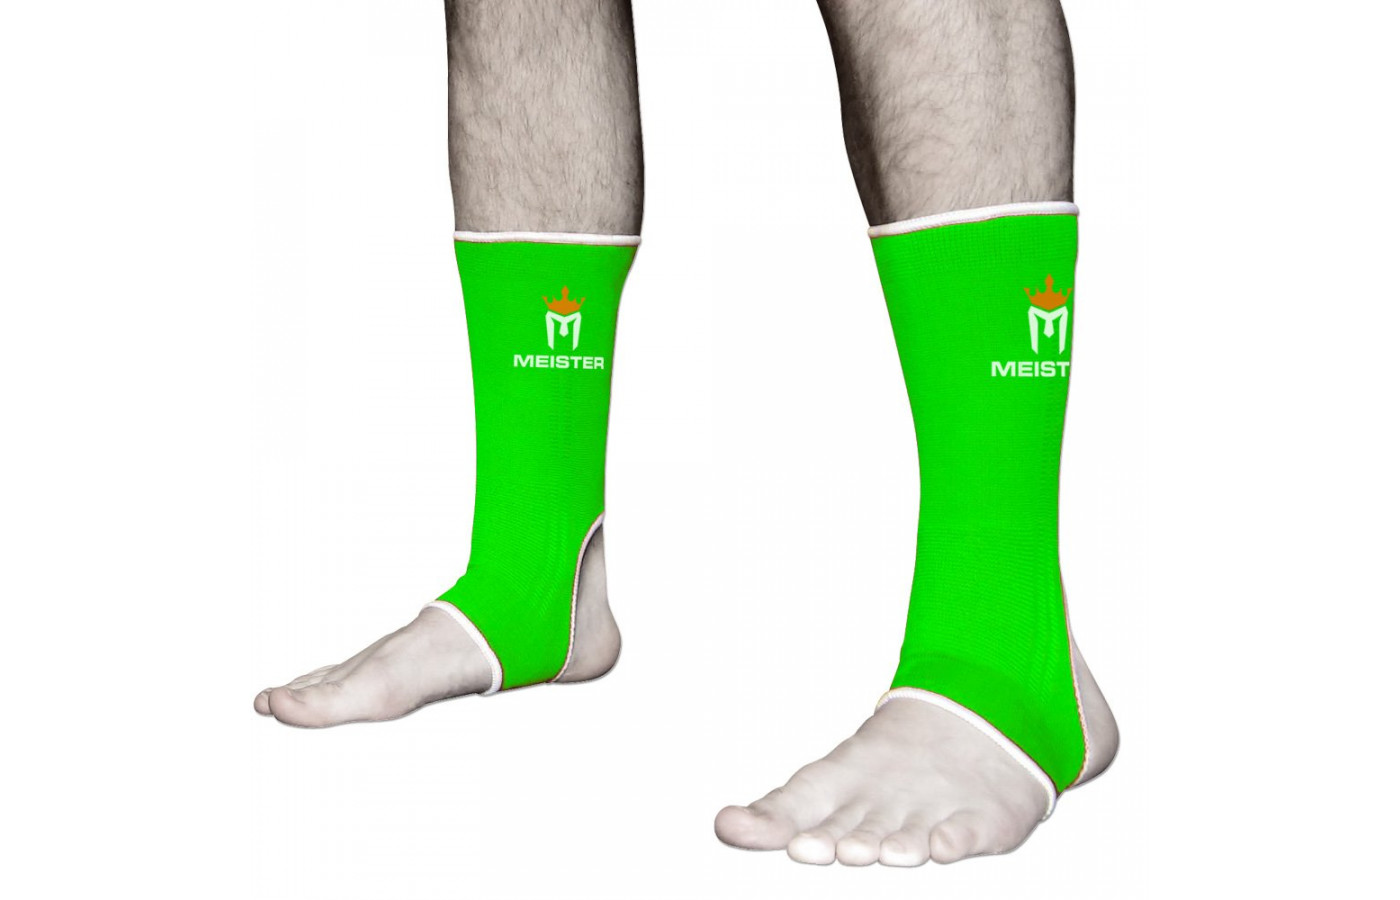 meister ankle supports green